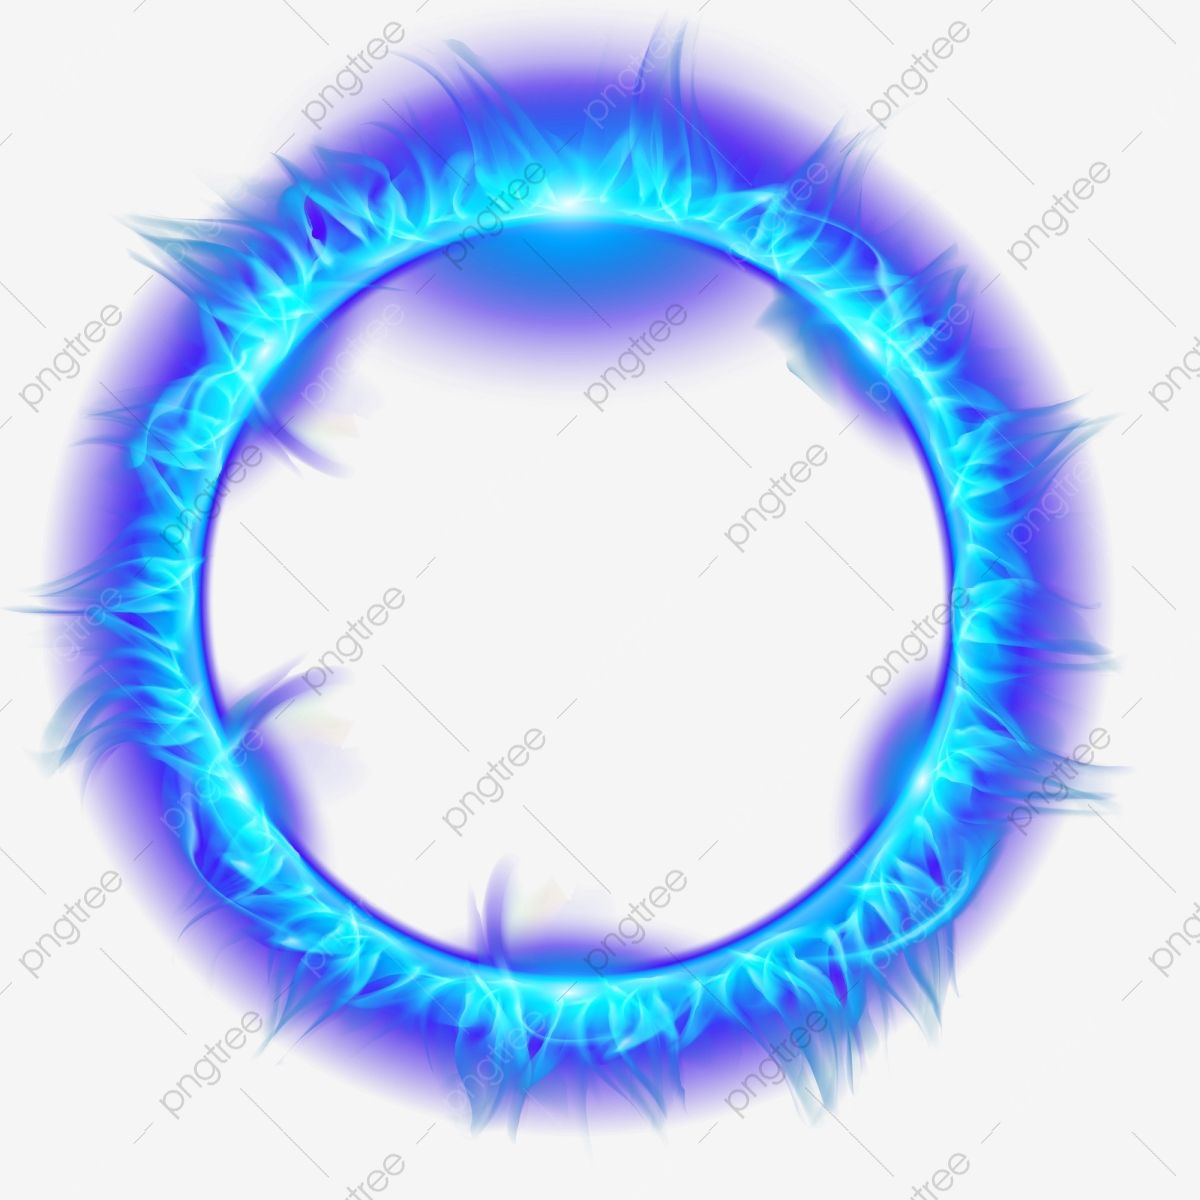 Download This Blue Flame Burning Ring Of Fire Flame Clipart Ring Of Fire Flame Png Clipart Image With Transparent Background Or Ps Blue Flames Love Png Fire